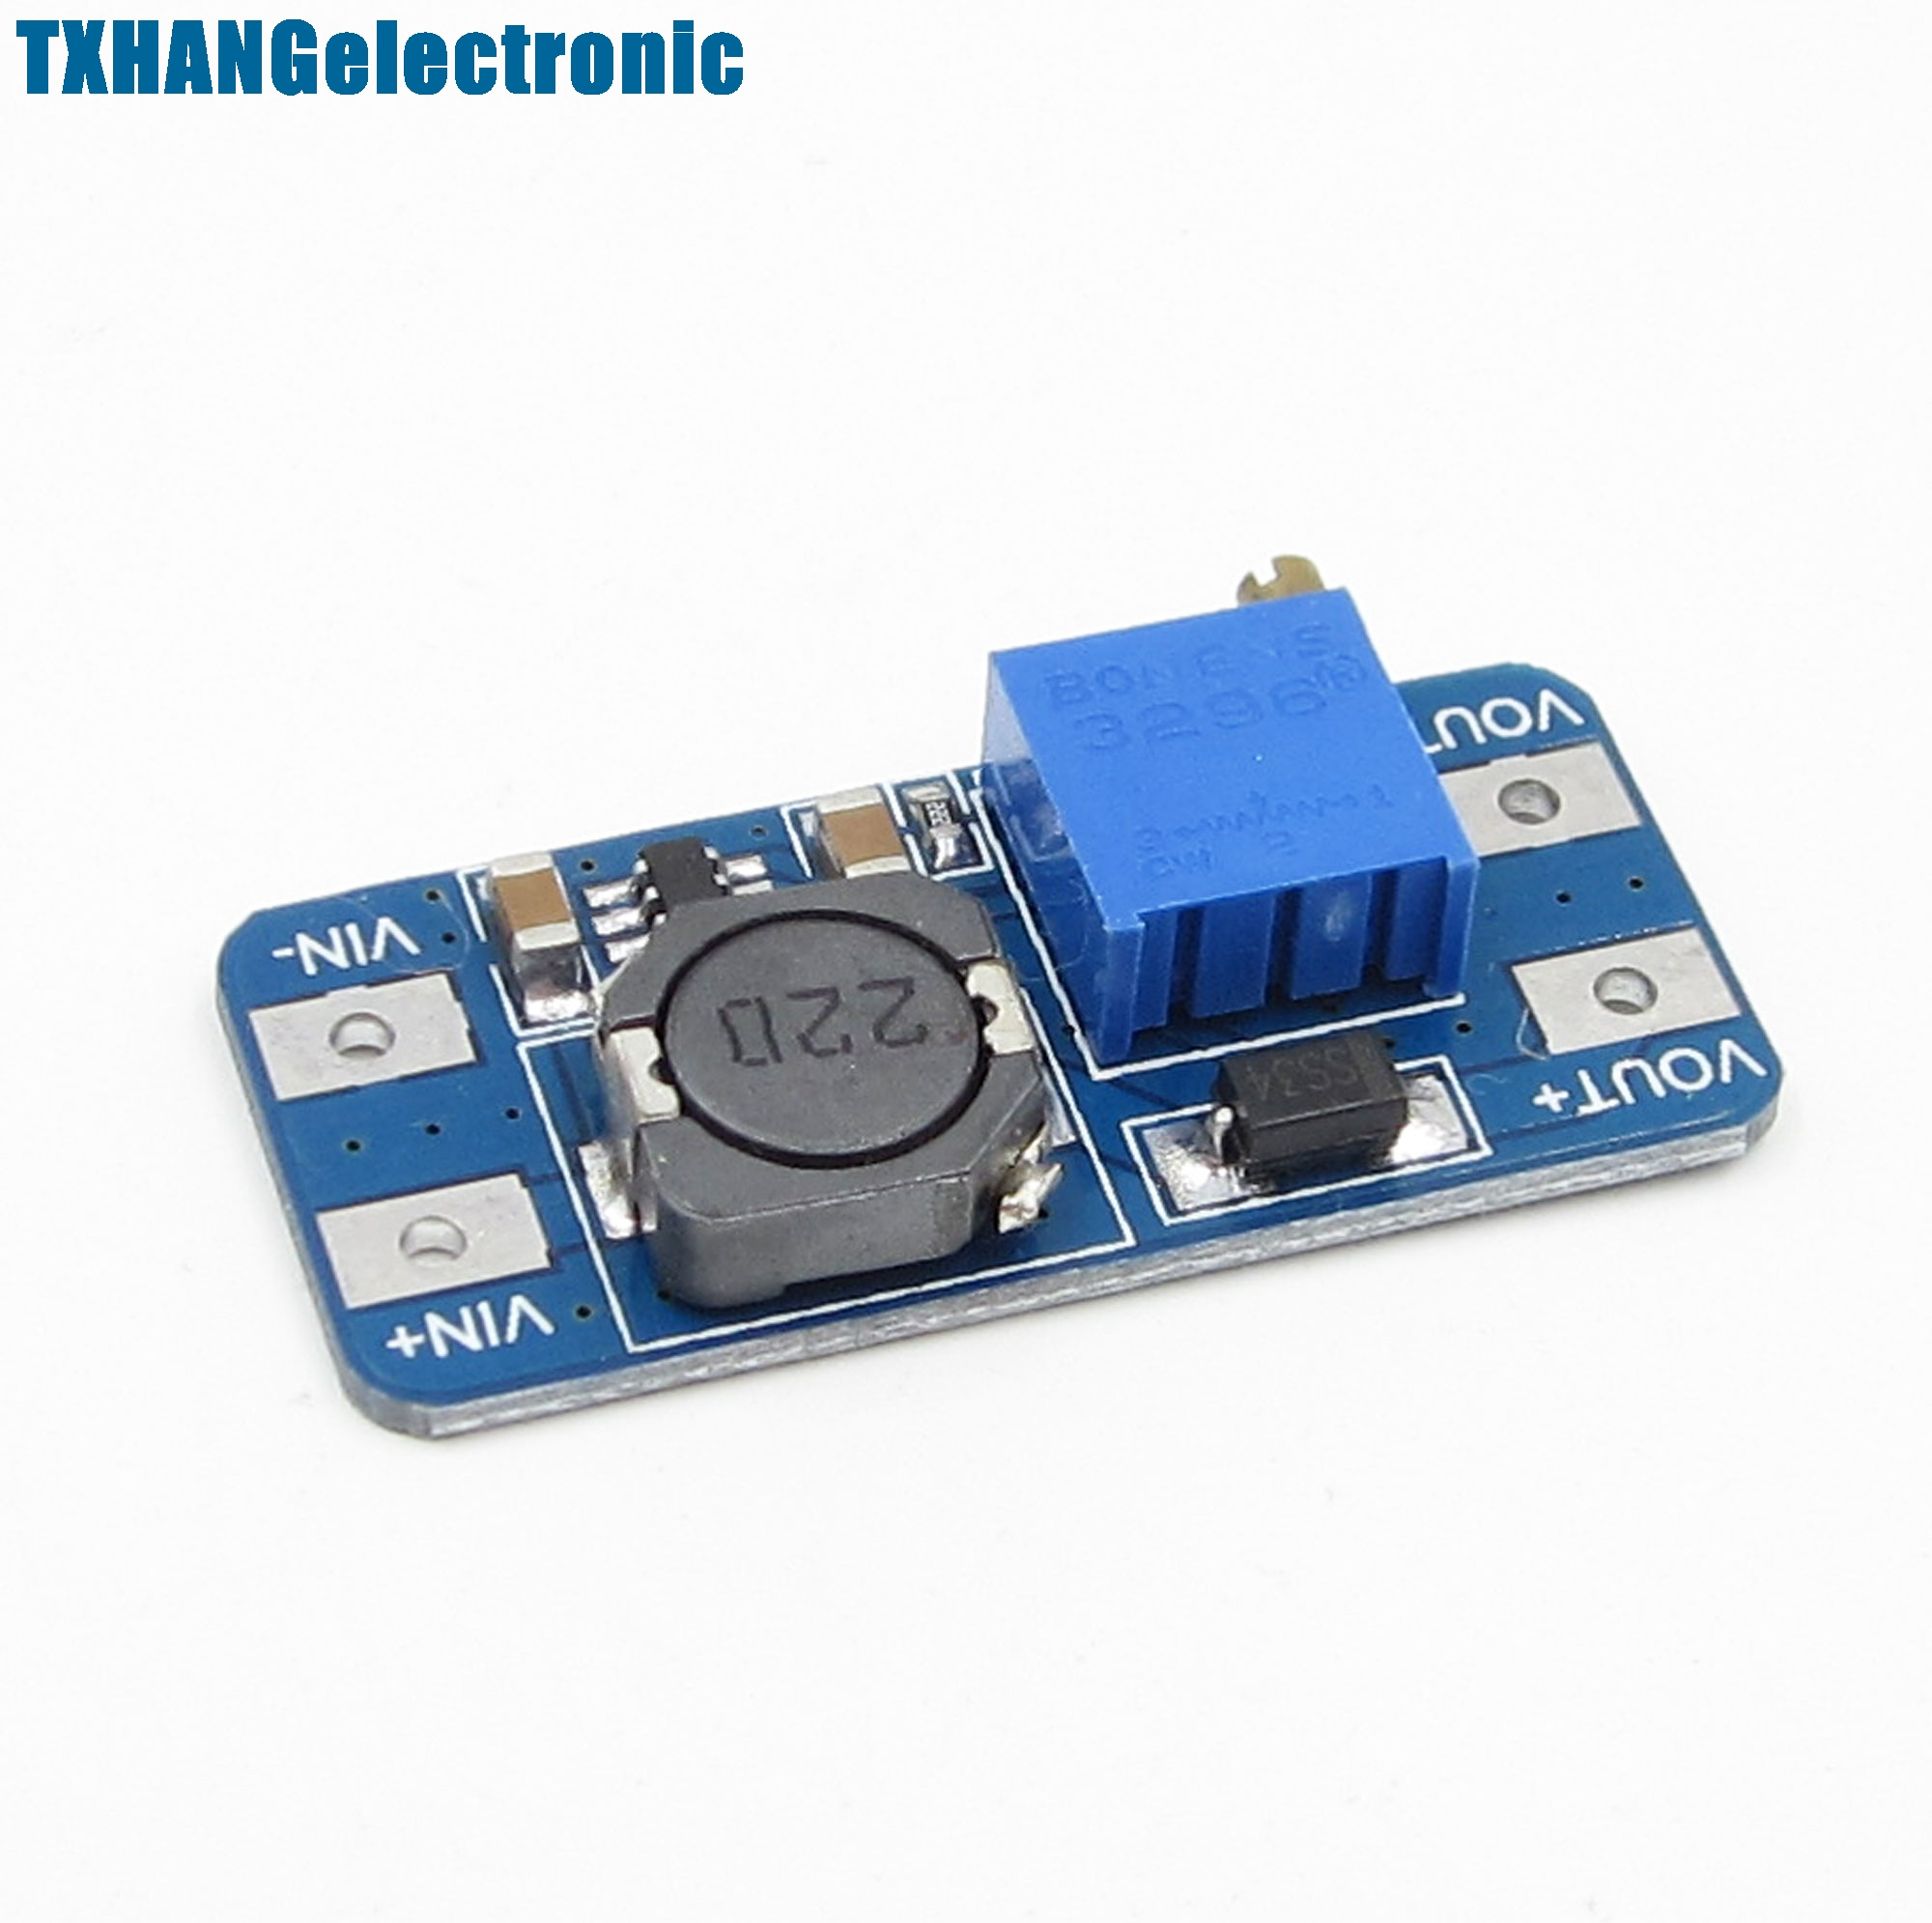 10pcs MT3608 ep Power Apply Booer Module DC-DC 2V-24V 2A